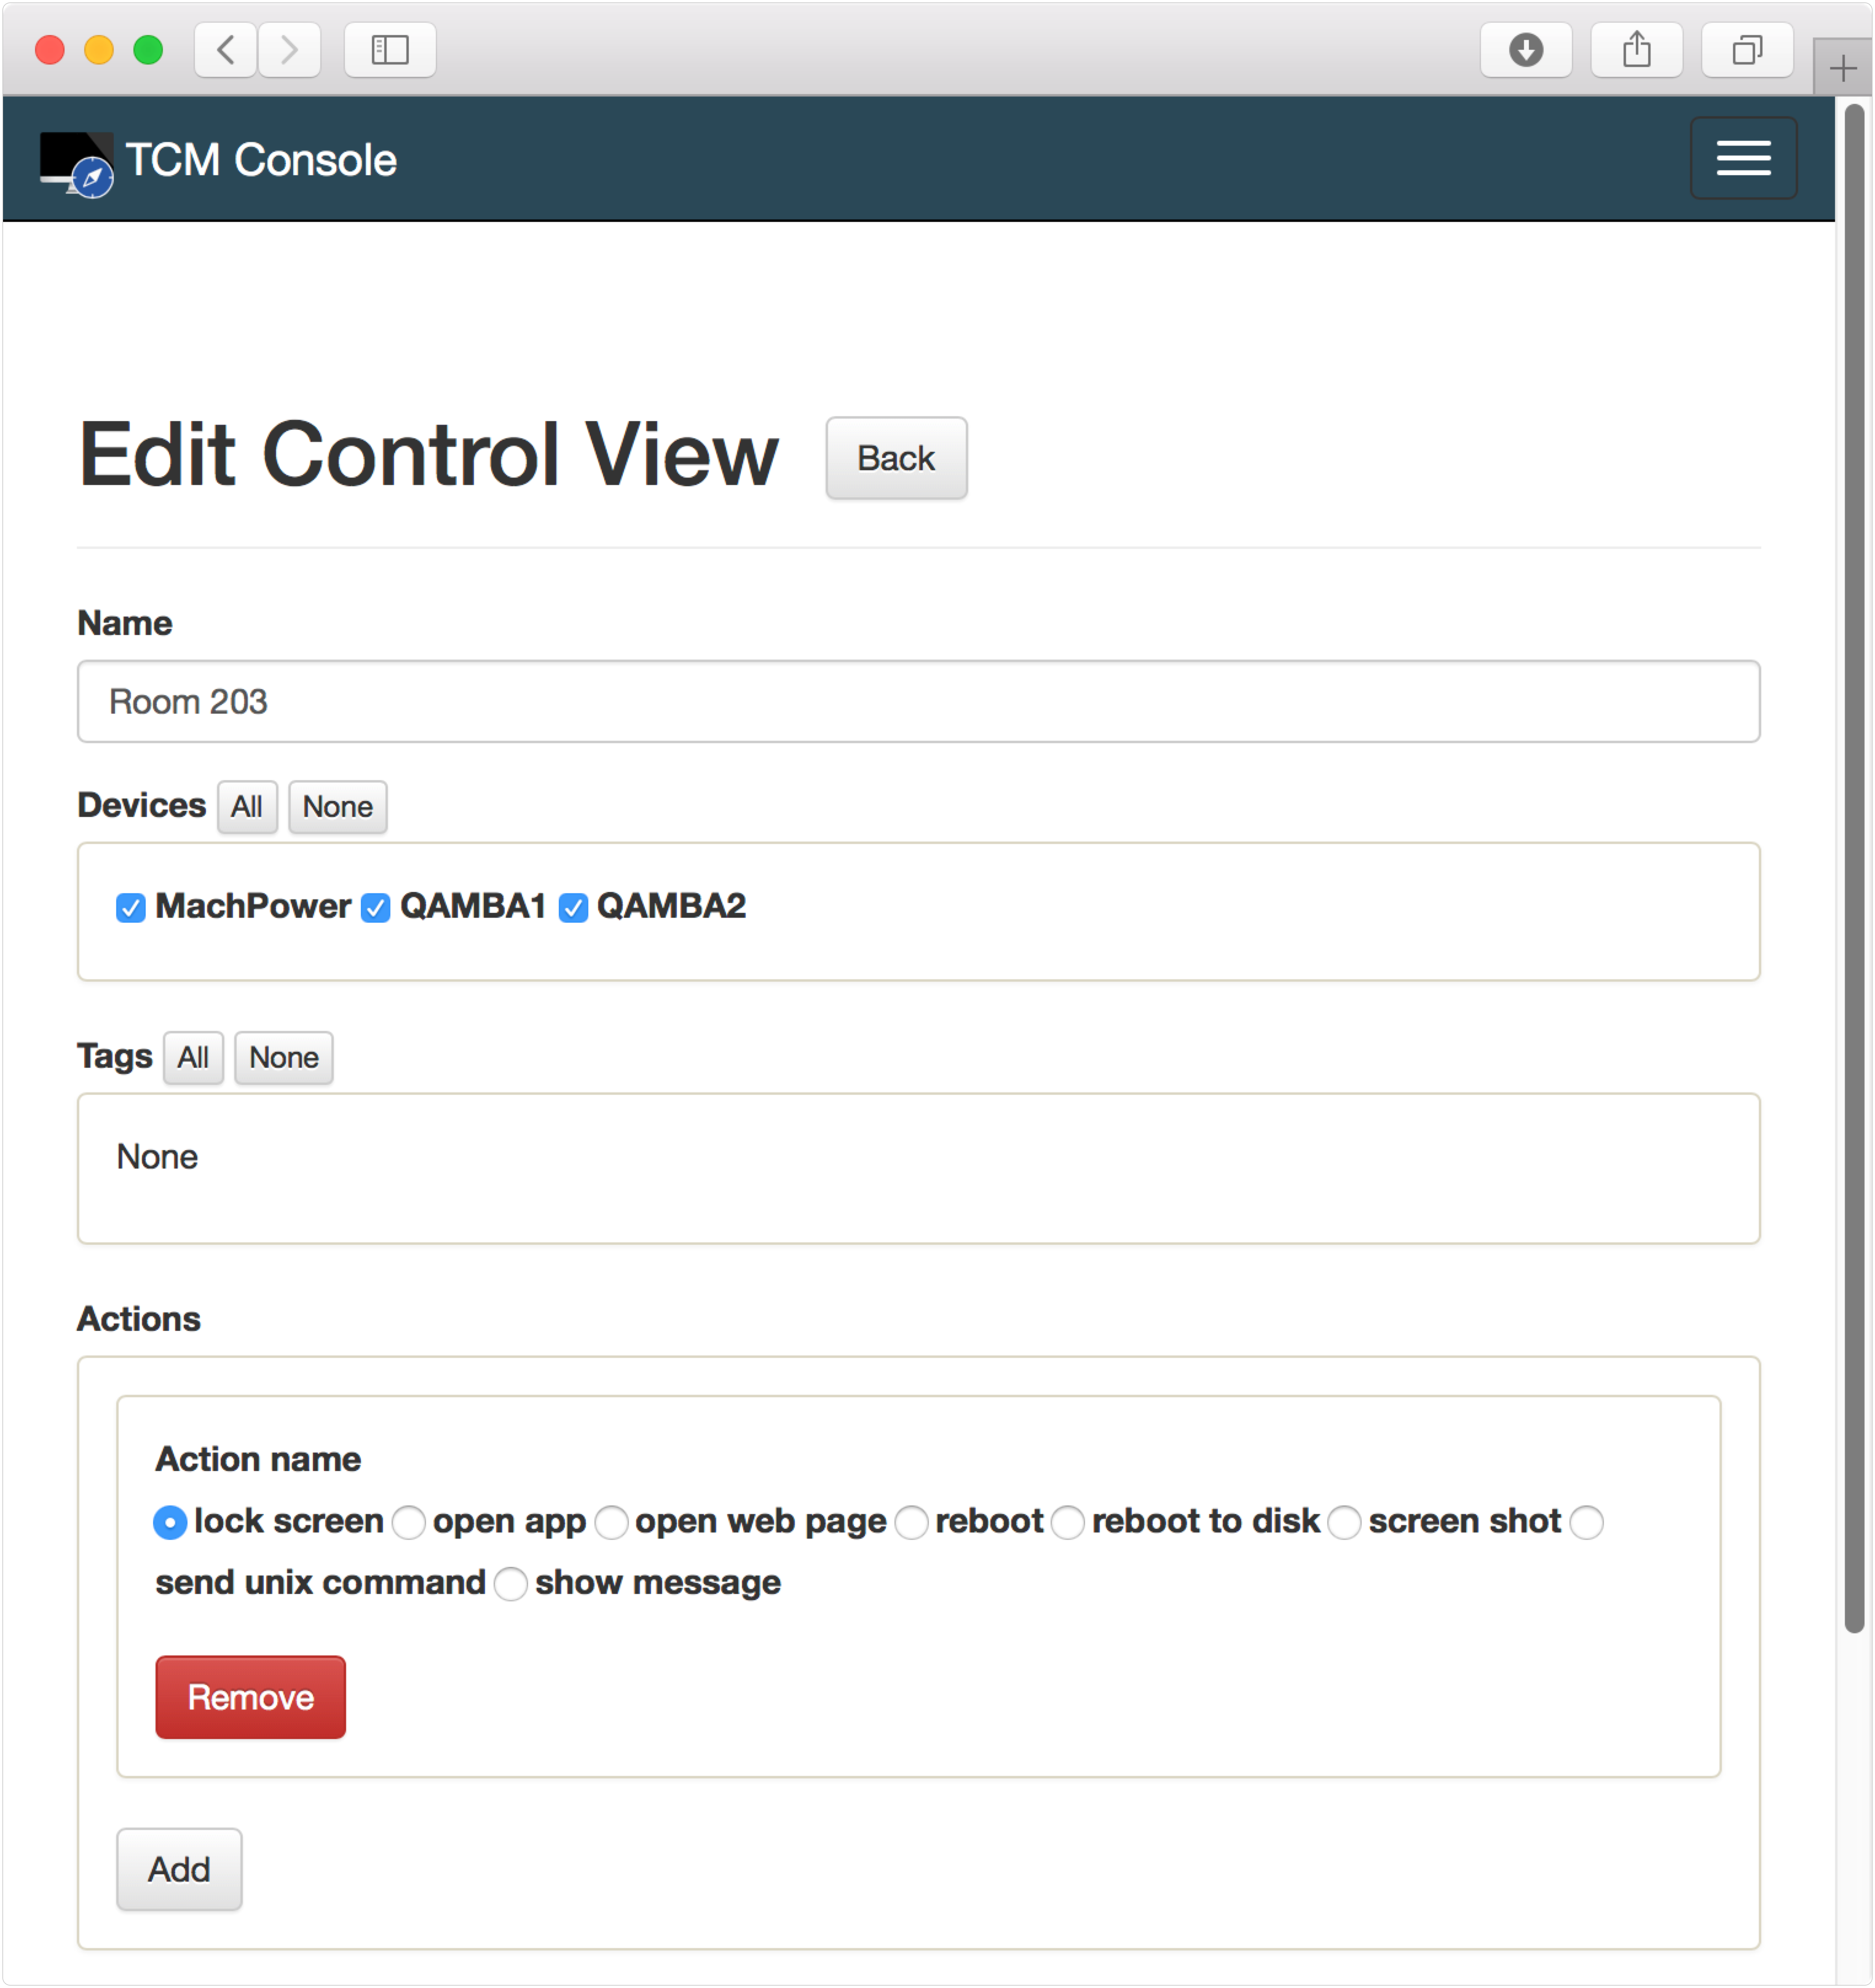 Configuring a Control View